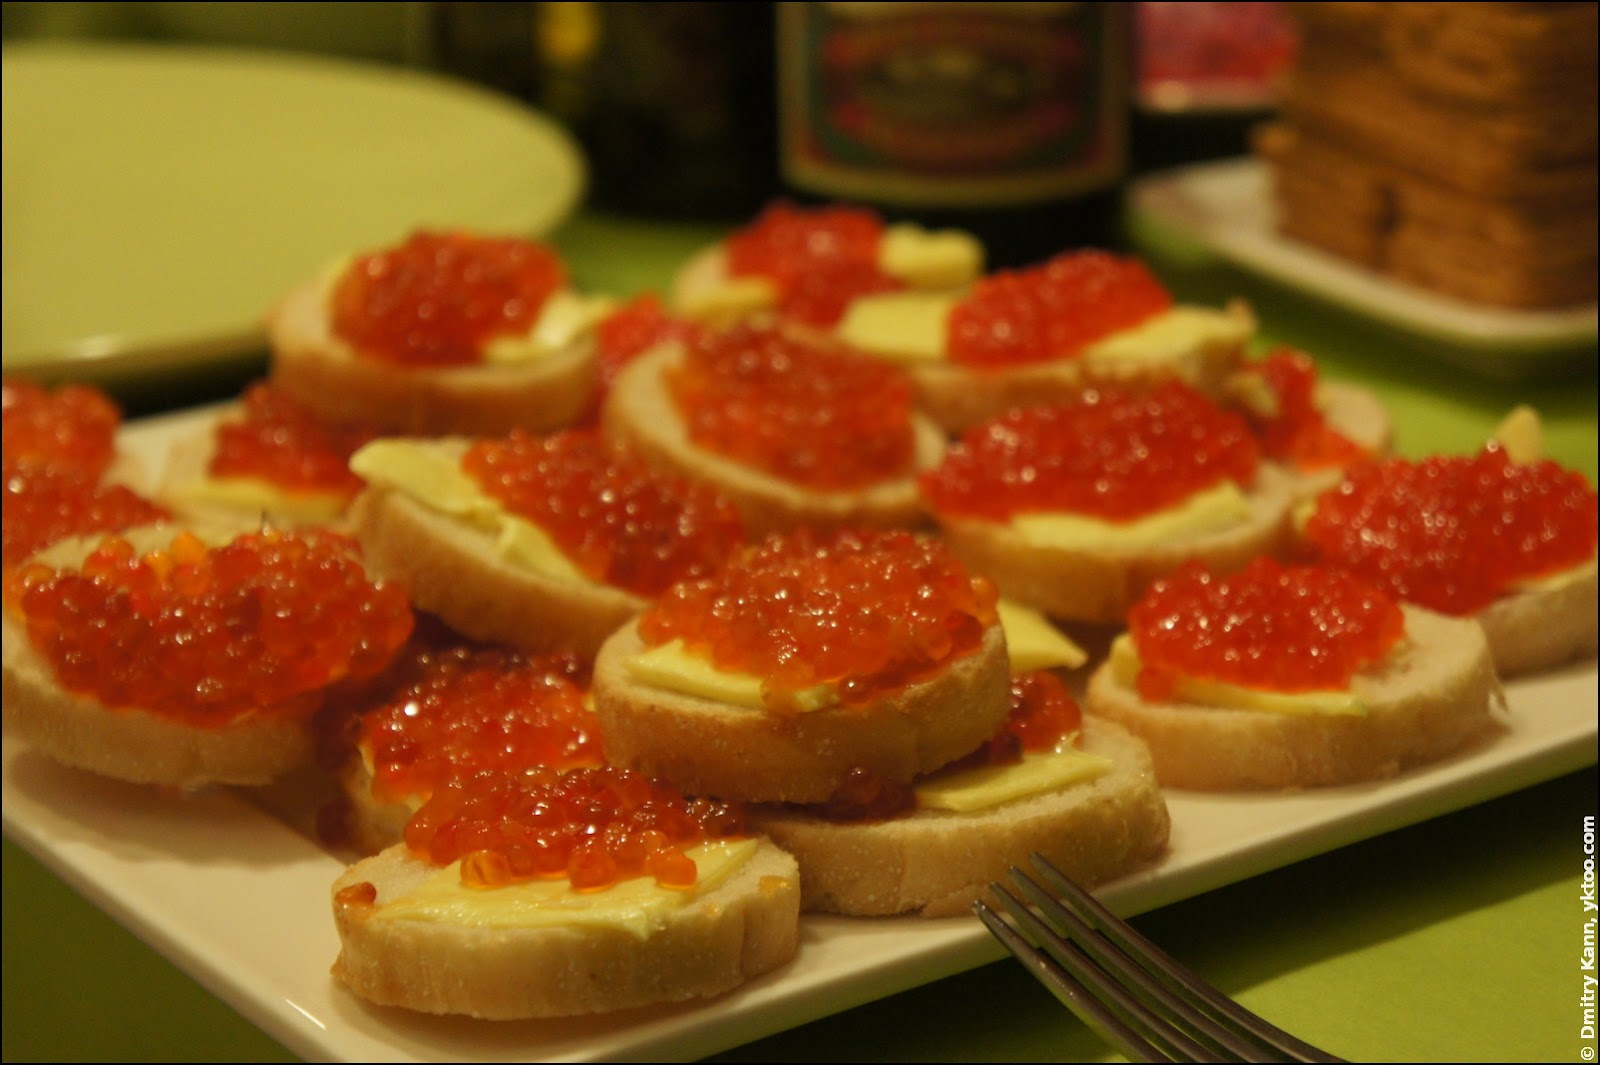 Red caviar is a typical Russian delight.